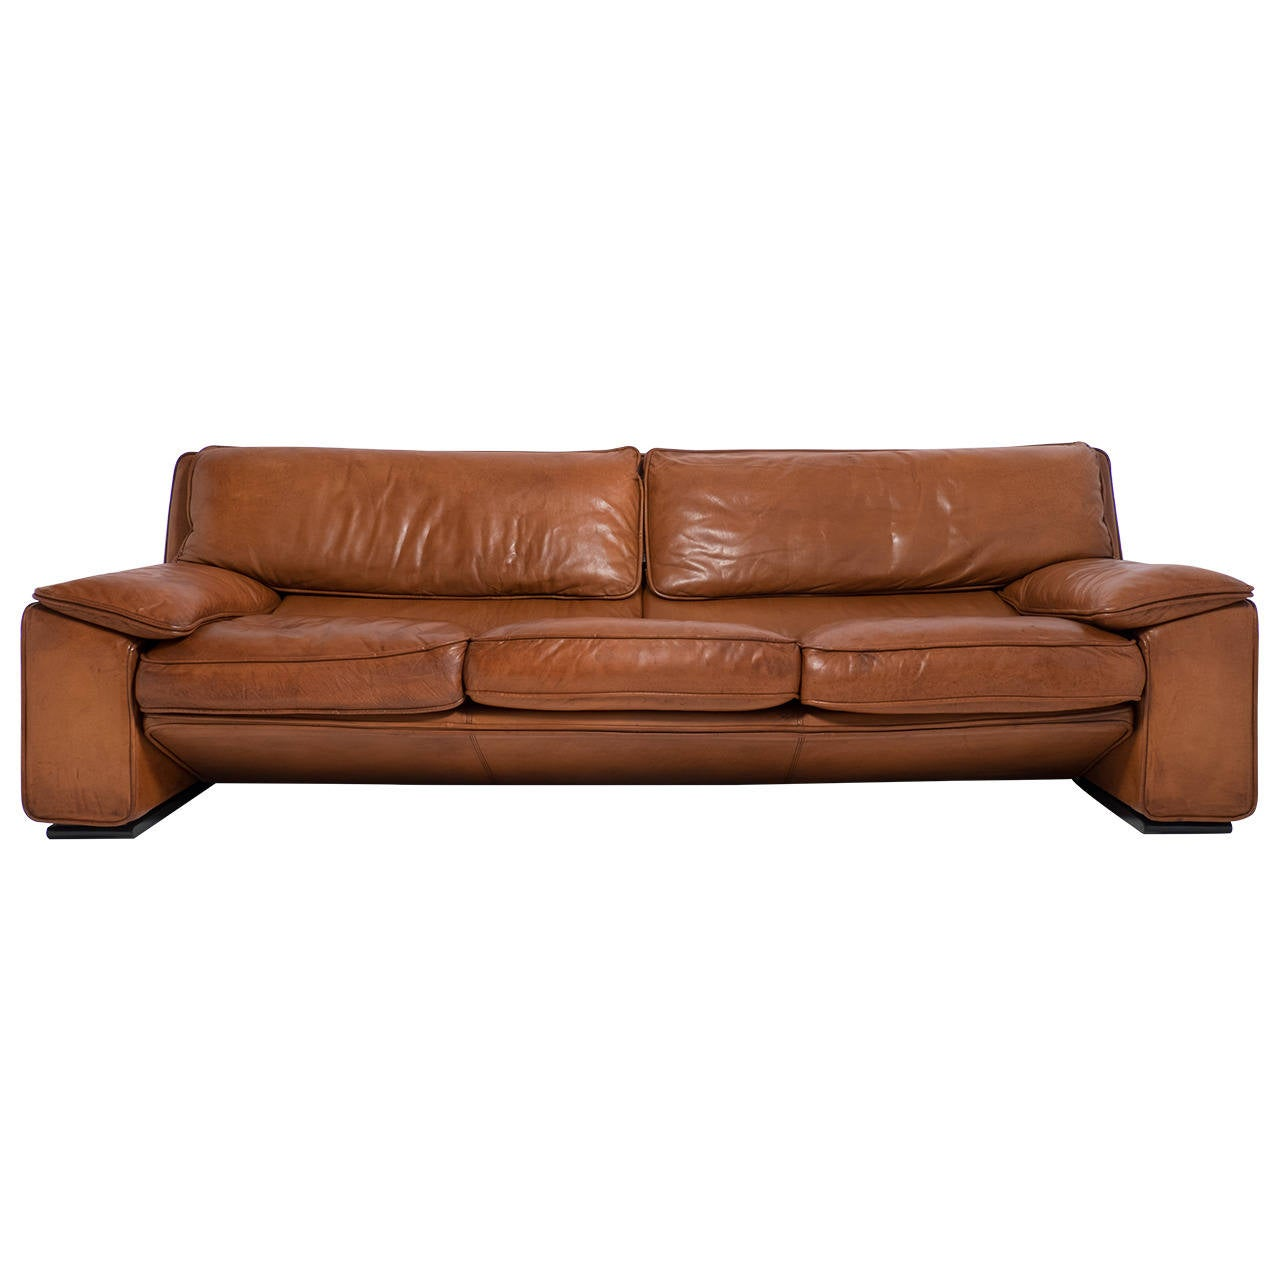 Superb Italian Vintage Leather Sofa By Ferrucio Brunati At 1stdibs